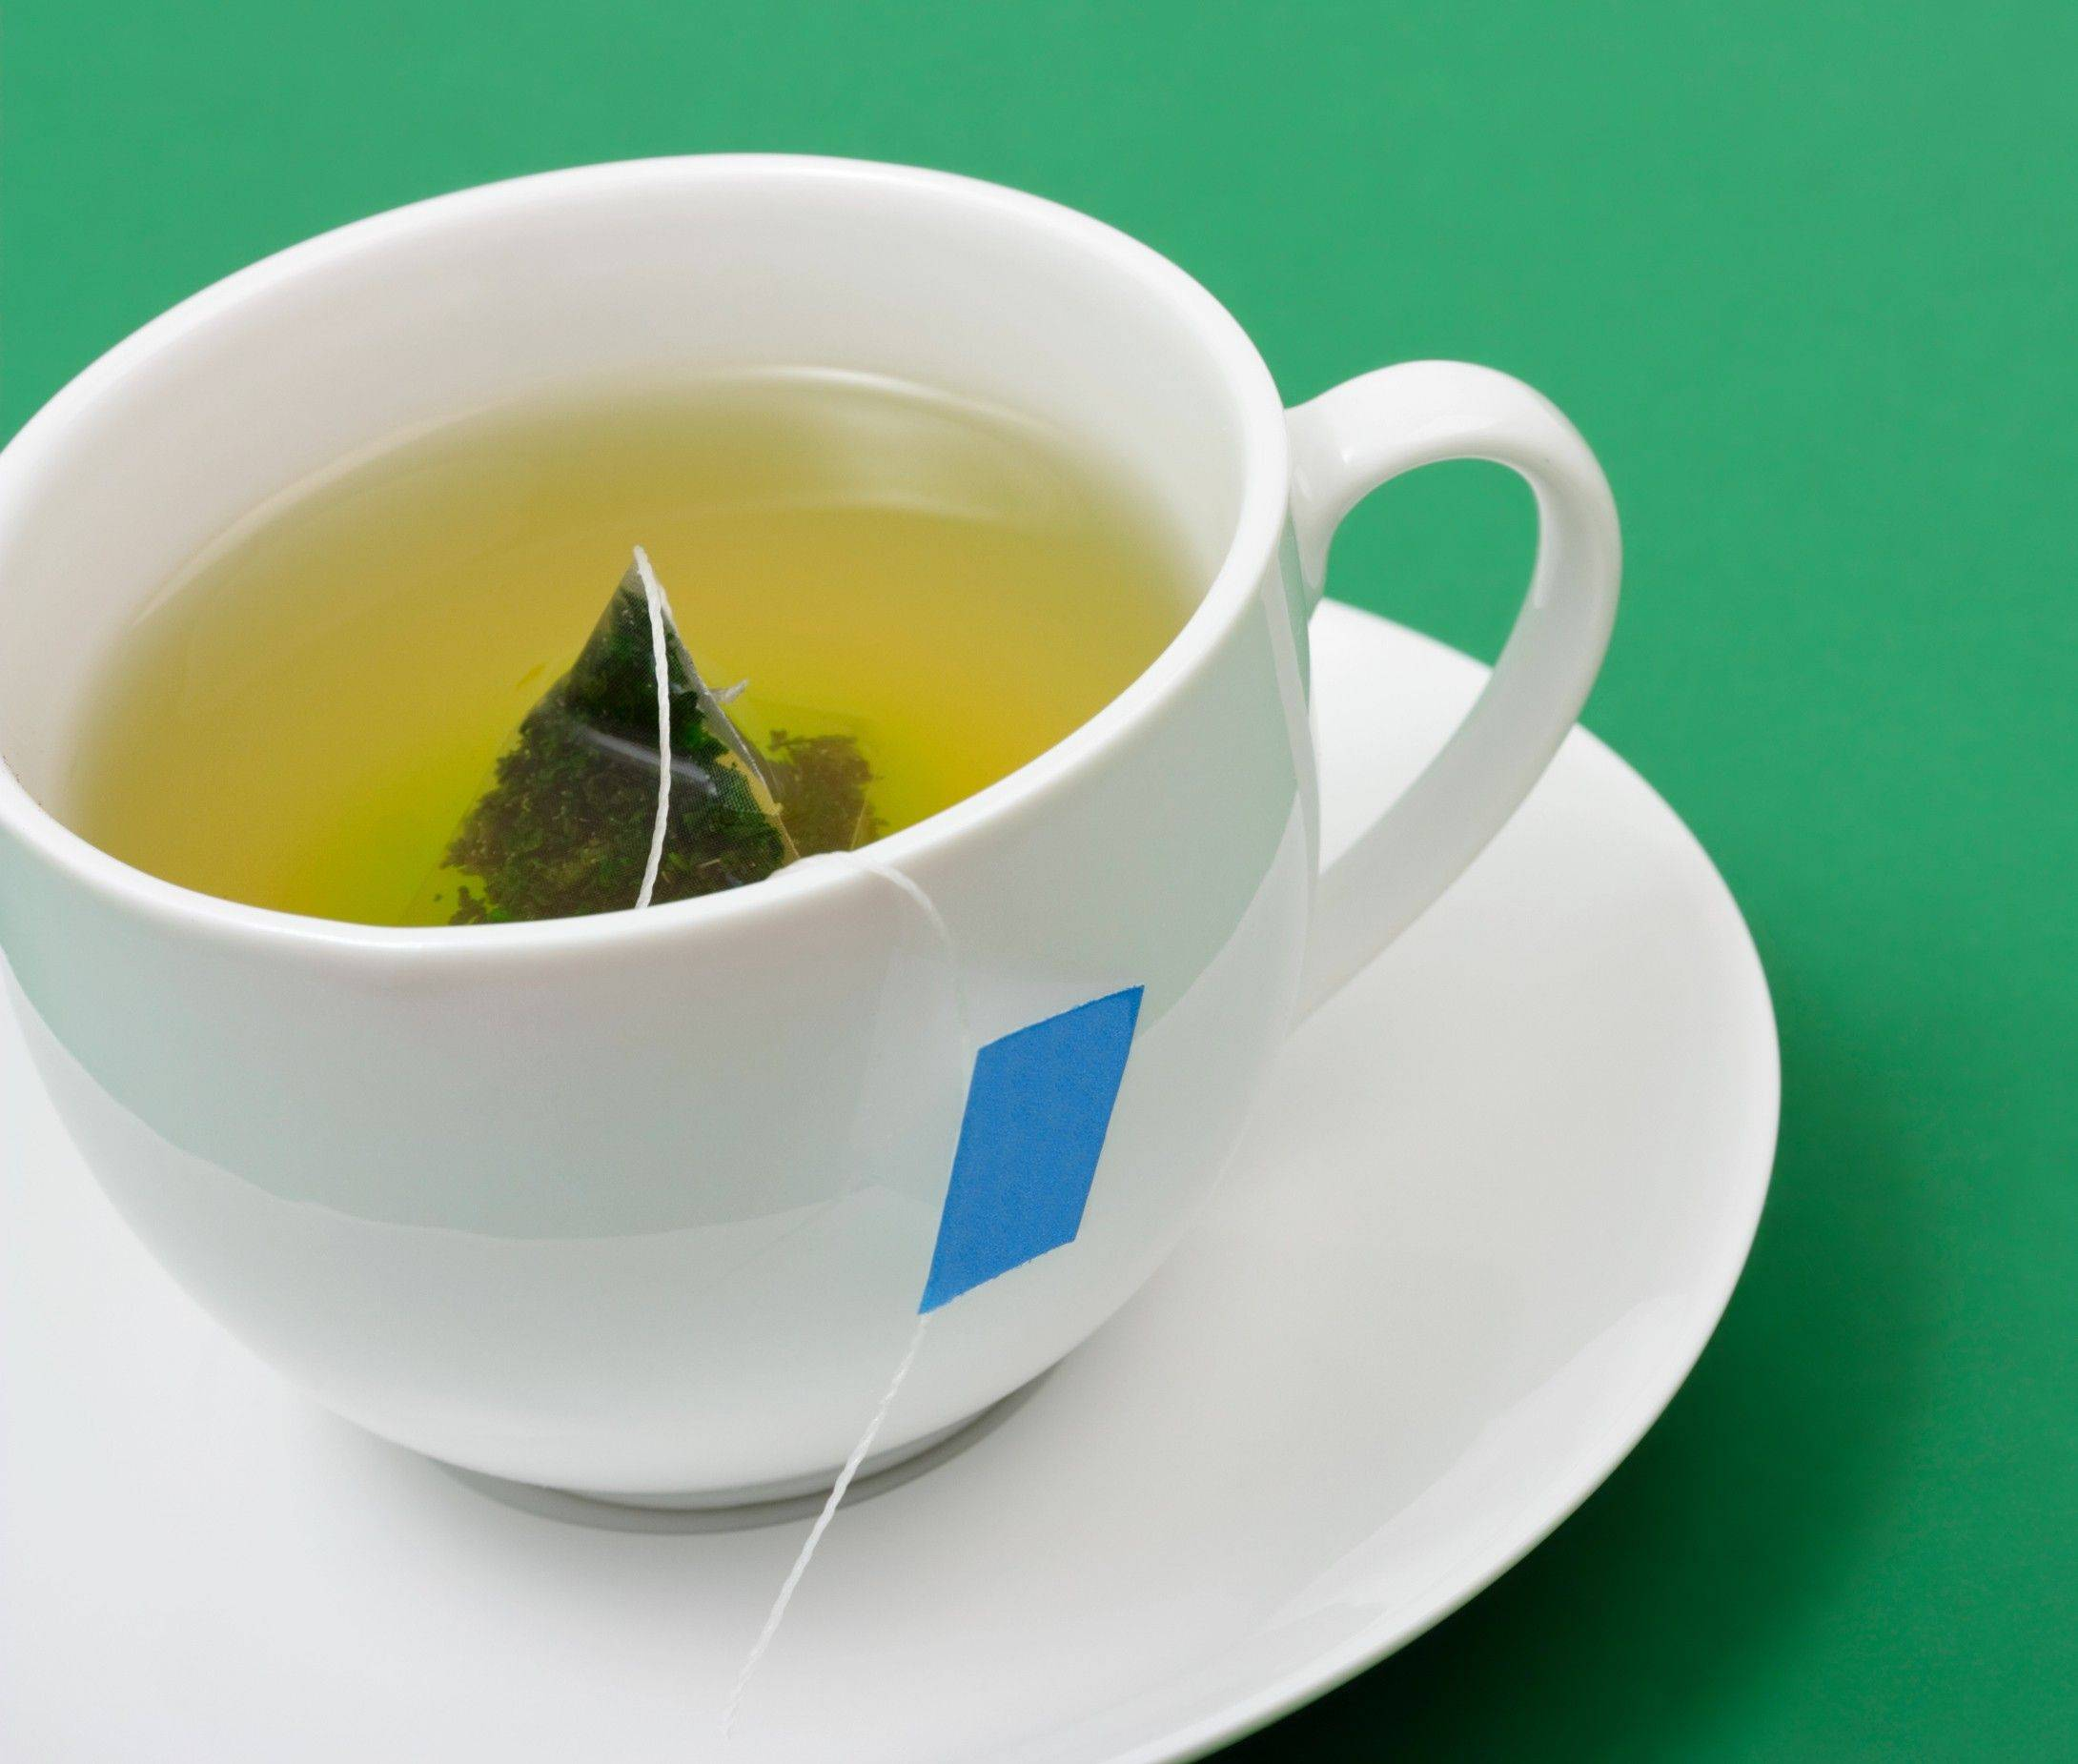 Photos.comGreen tea